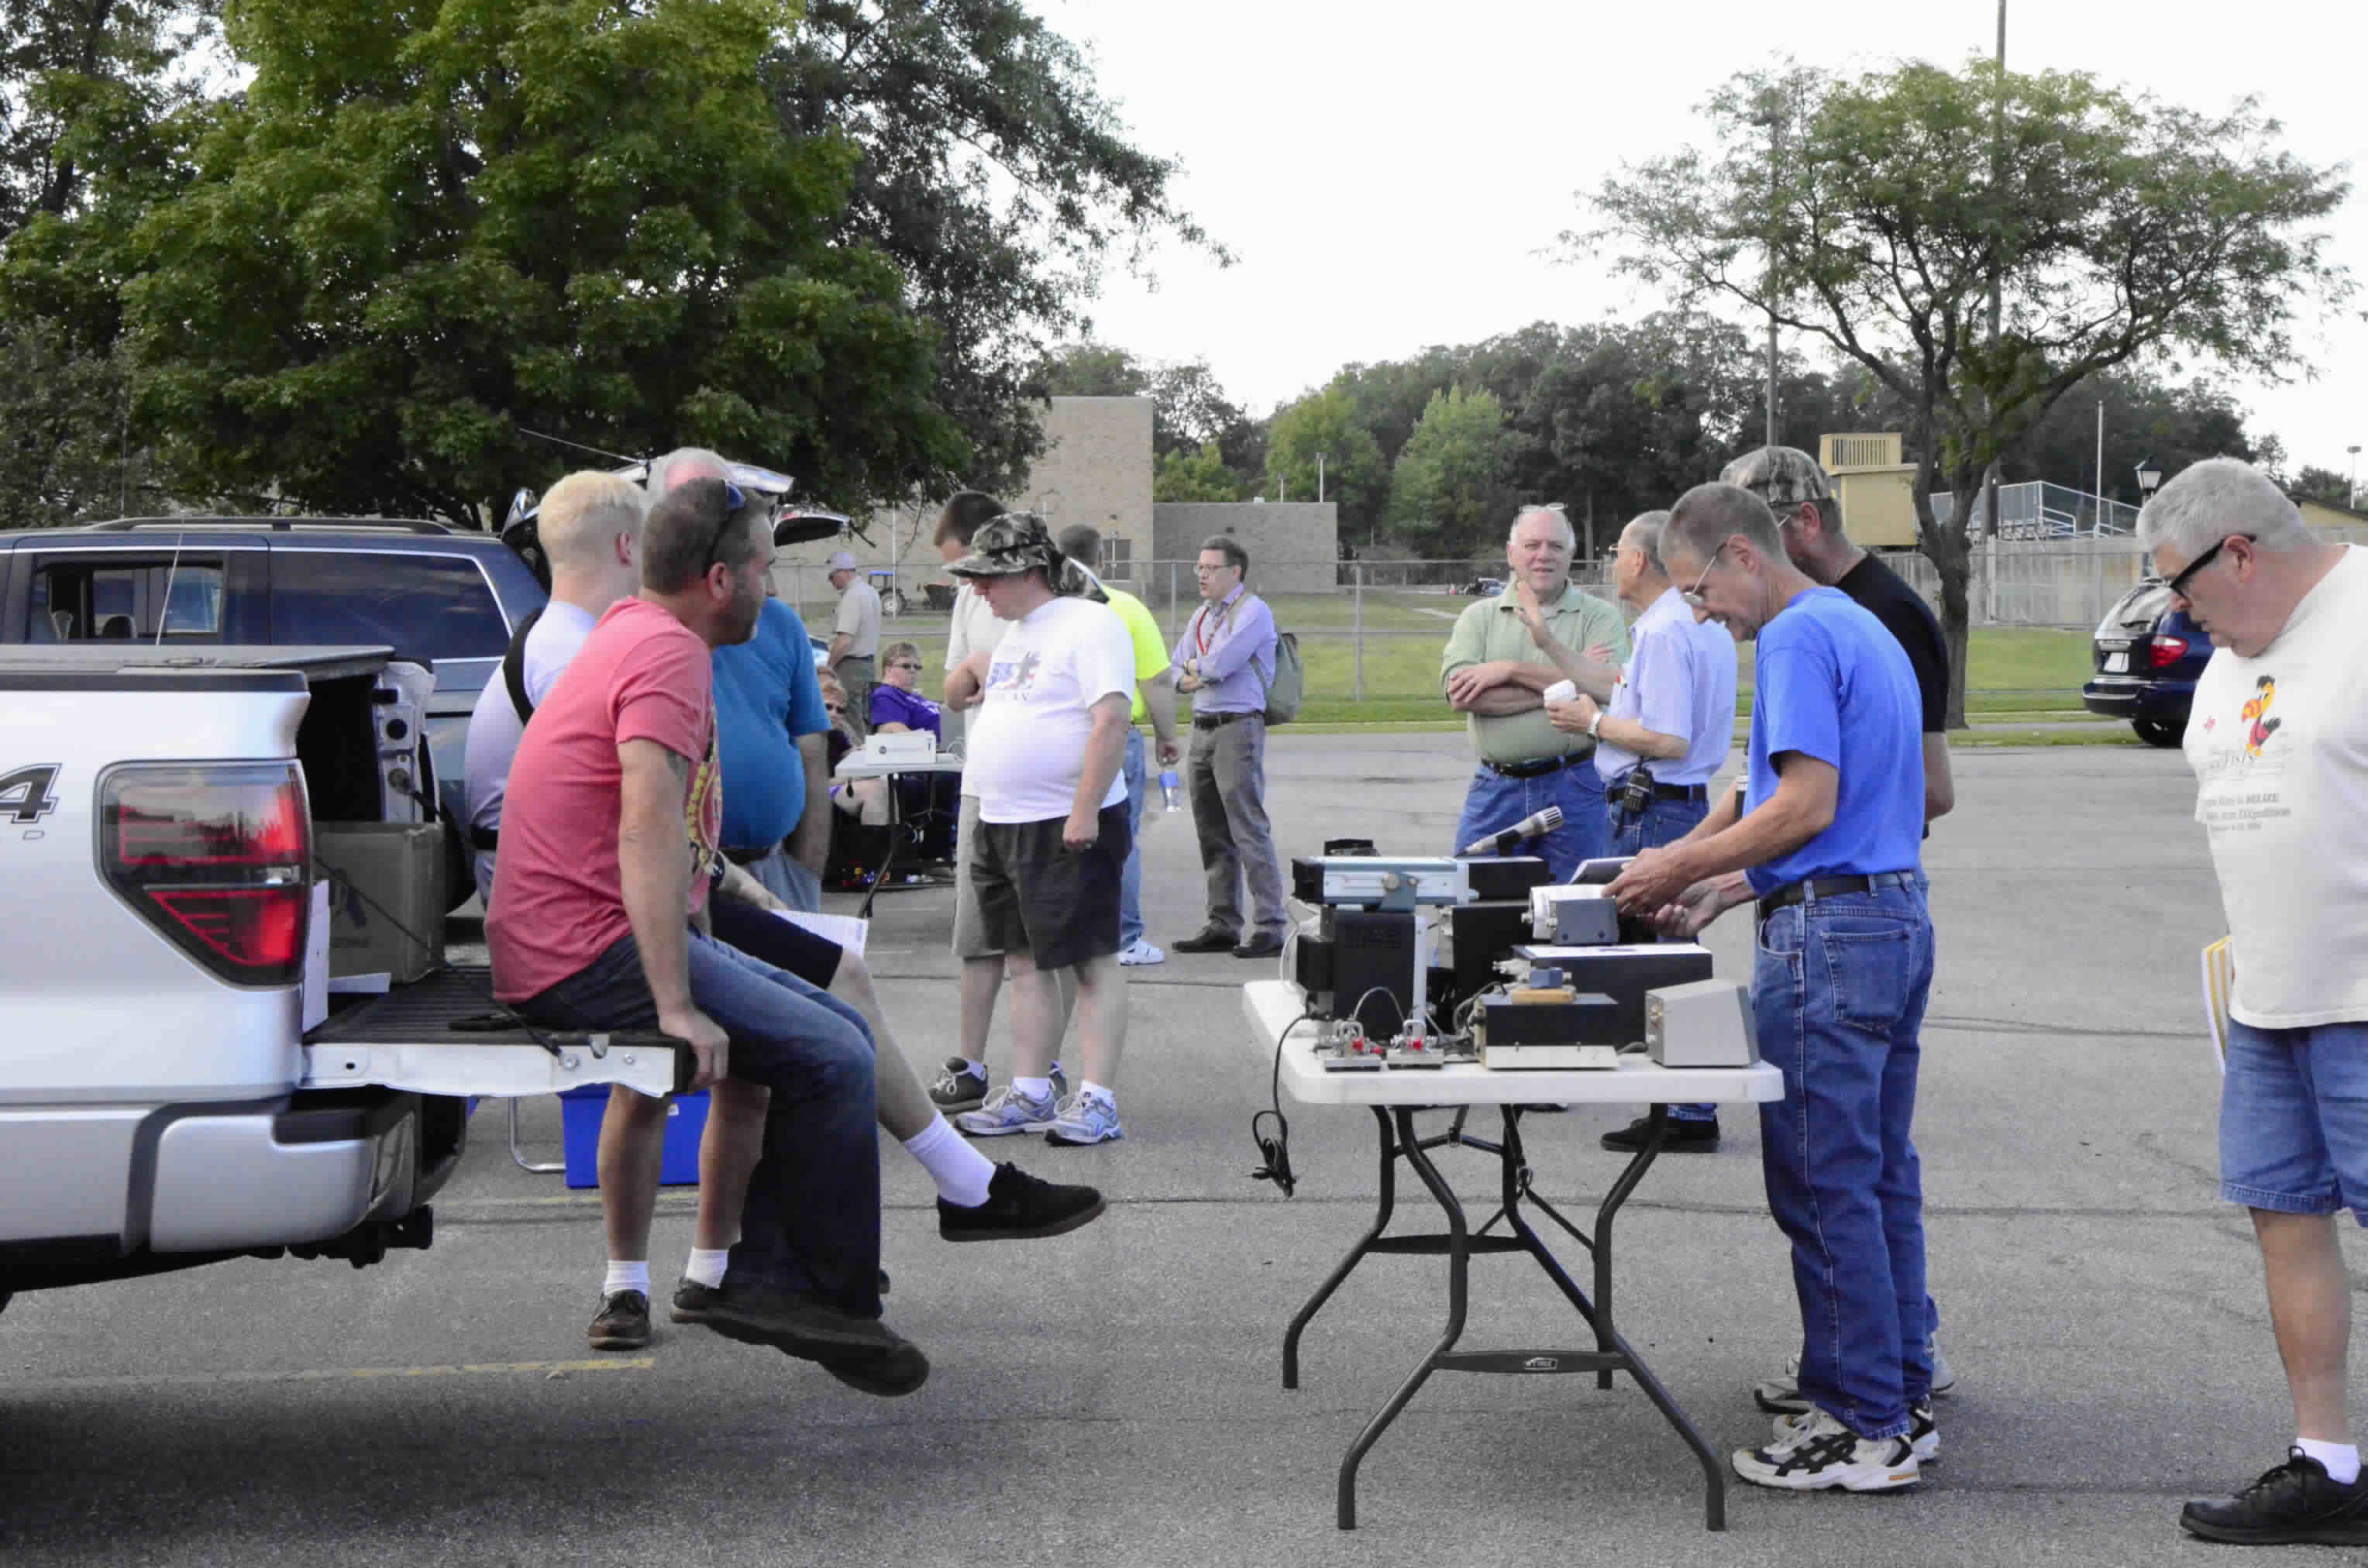 Fort Wayne Radio Club hosts a tailgate hamfest every August